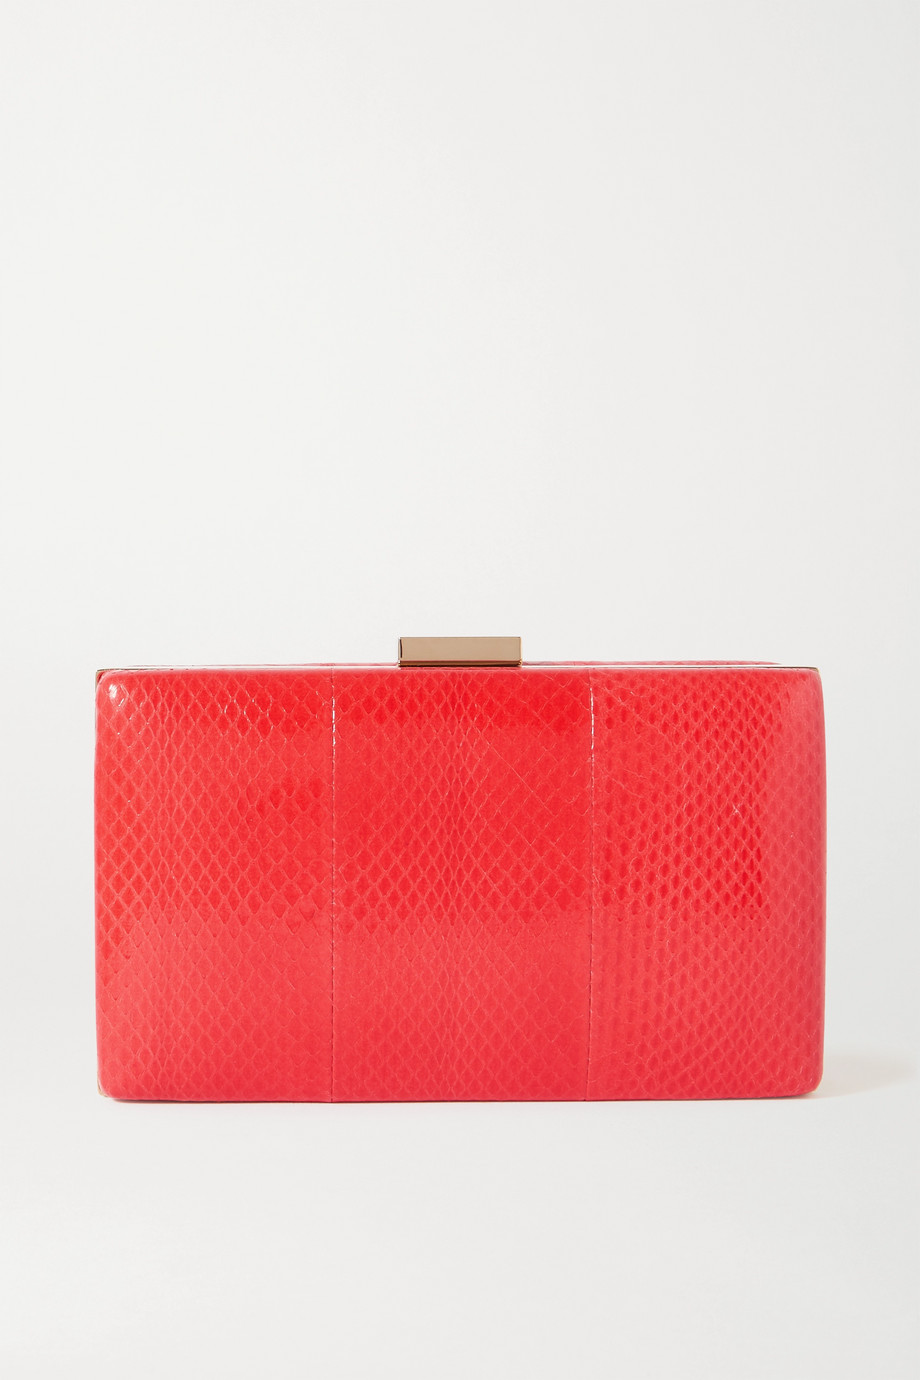 Valentino Valentino Garavani Carry Secrets watersnake clutch